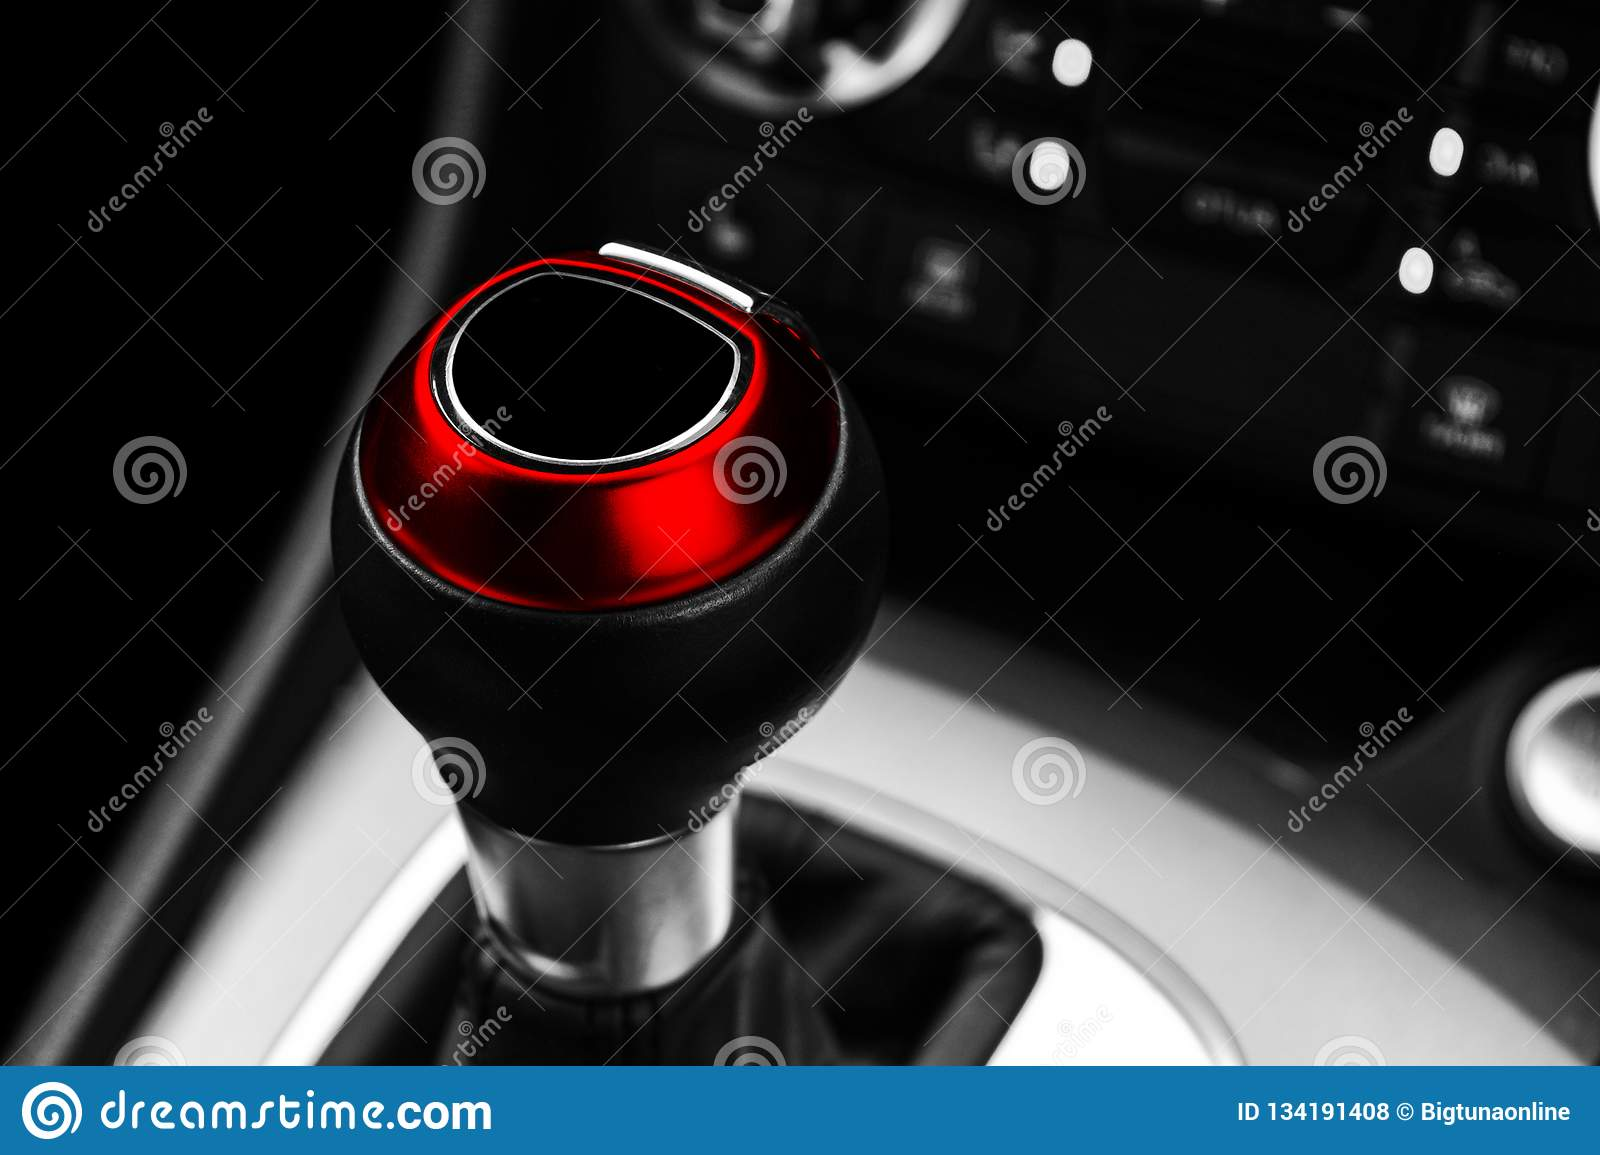 Close up view of a red gear lever shift. Manual gearbox. Car interior details. Car transmission. Soft lighting. Abstract view. Car